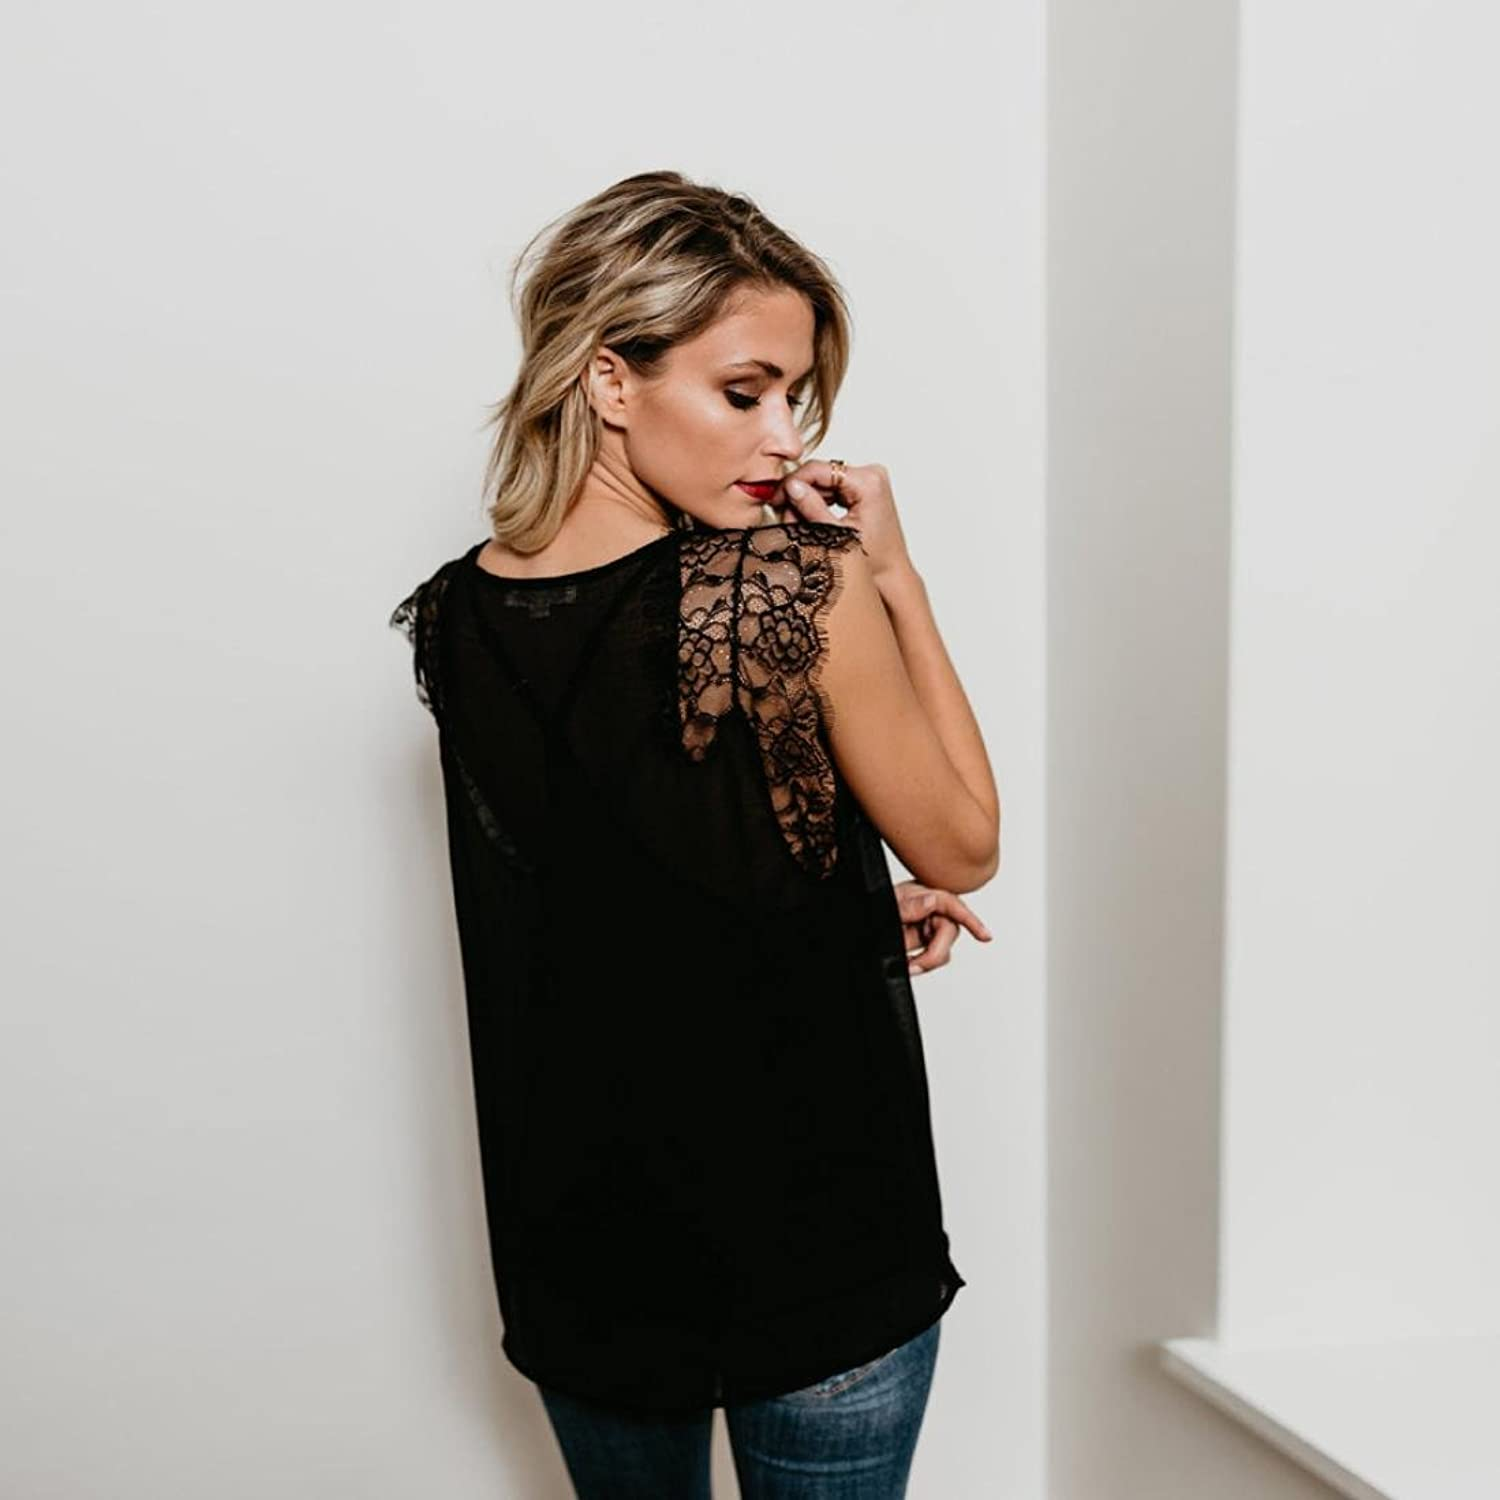 Amazon.com: DondPO Women Lace Sleeveless Tops Sexy Deep V Neck Hollow Summer Loose Blouse T Shirt Vest: Clothing